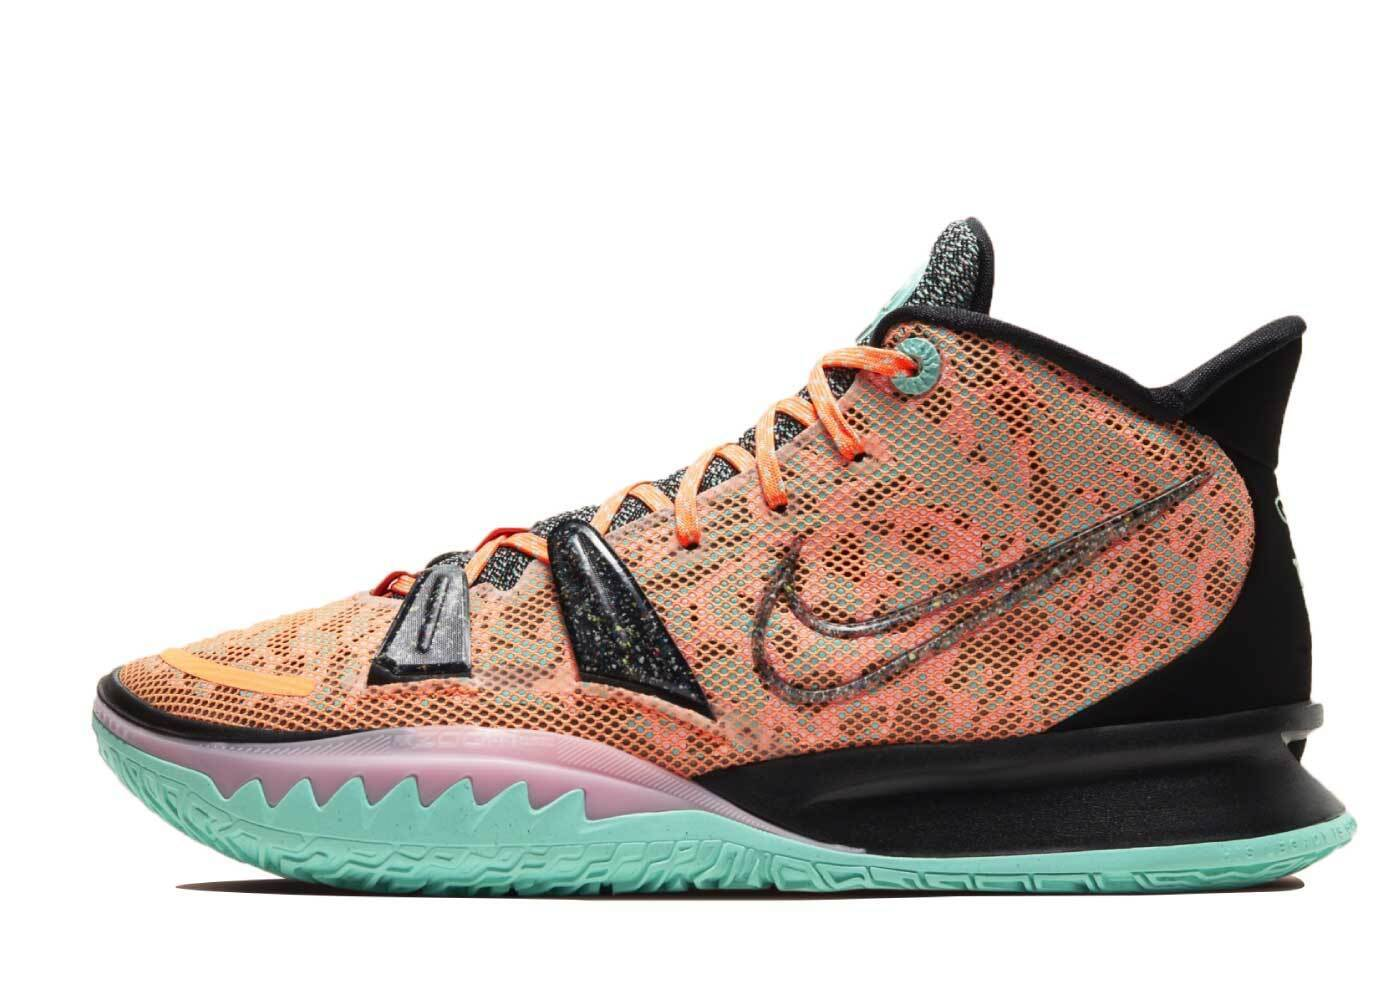 Nike Kyrie 7 EP Play to Futureの写真